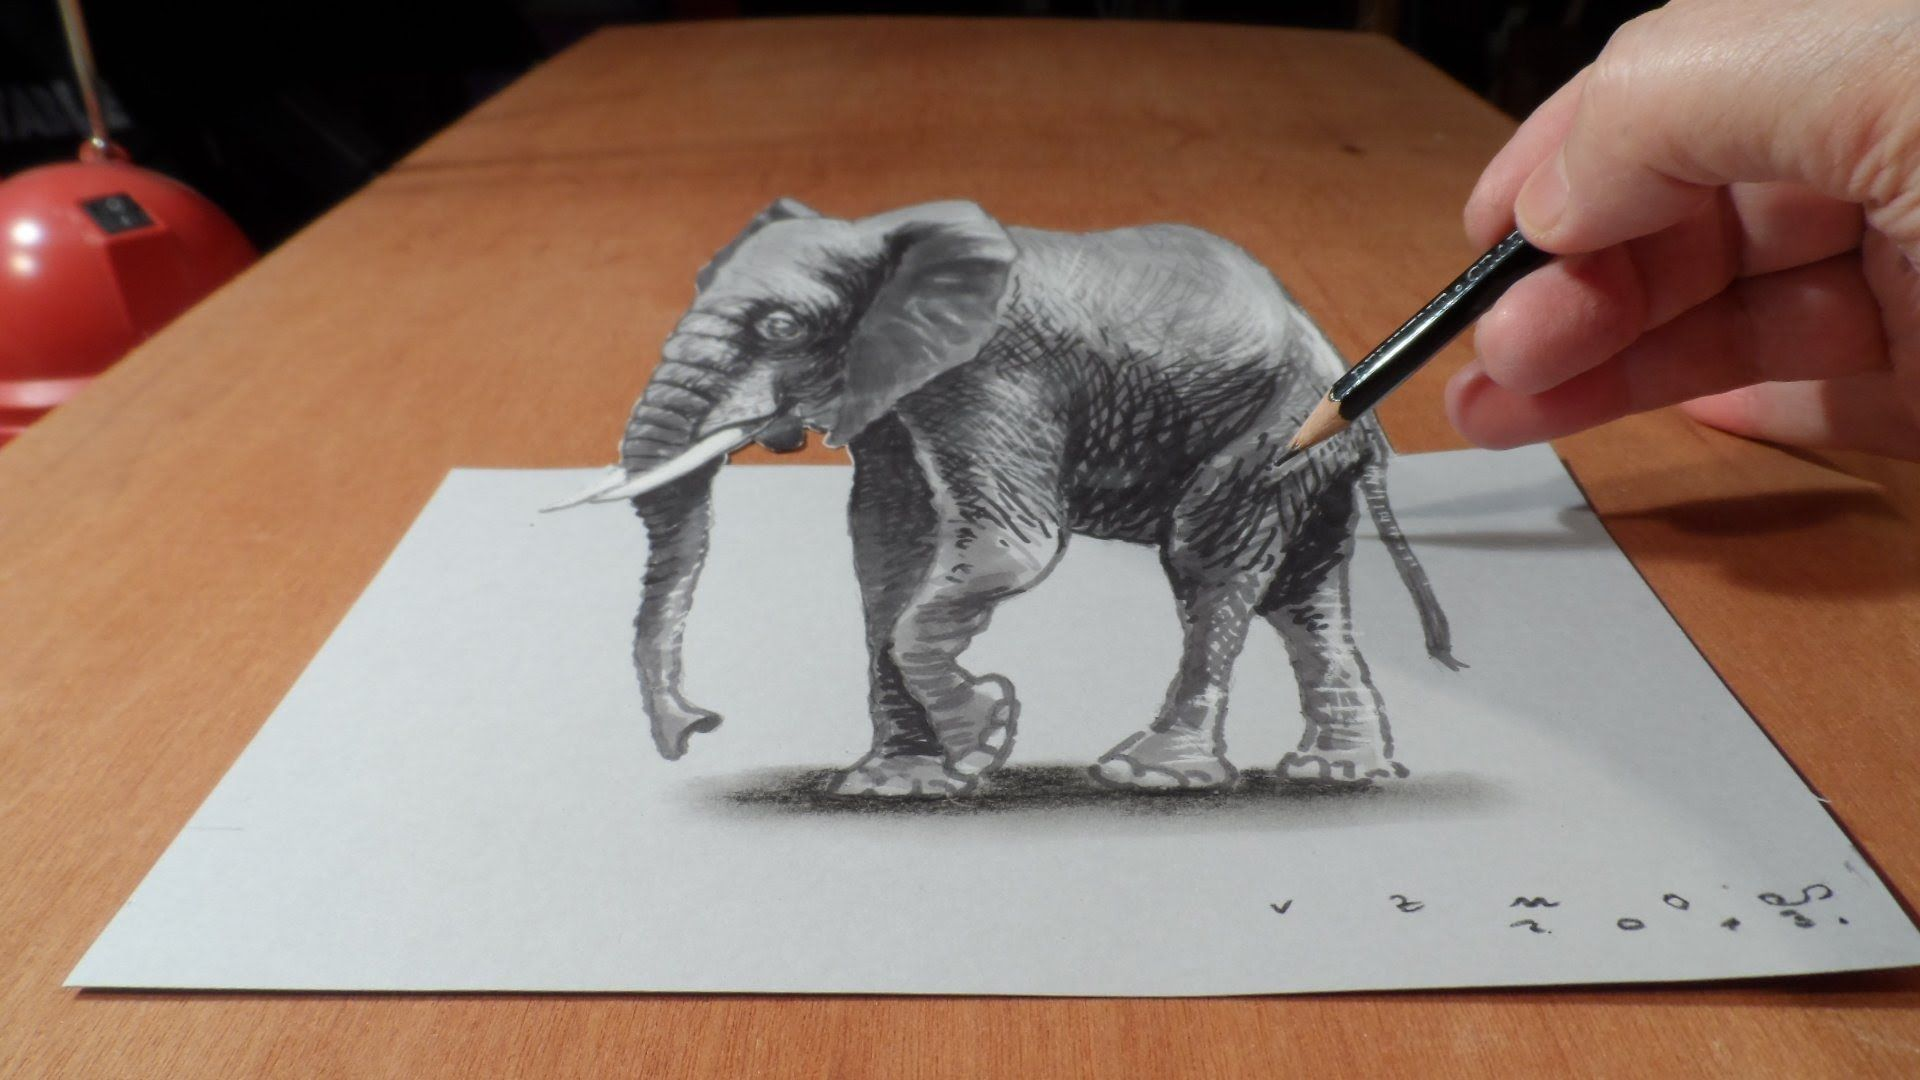 Trick Art On Paper Magic Realism How To Draw D Elephant - Anamorphic art looks real